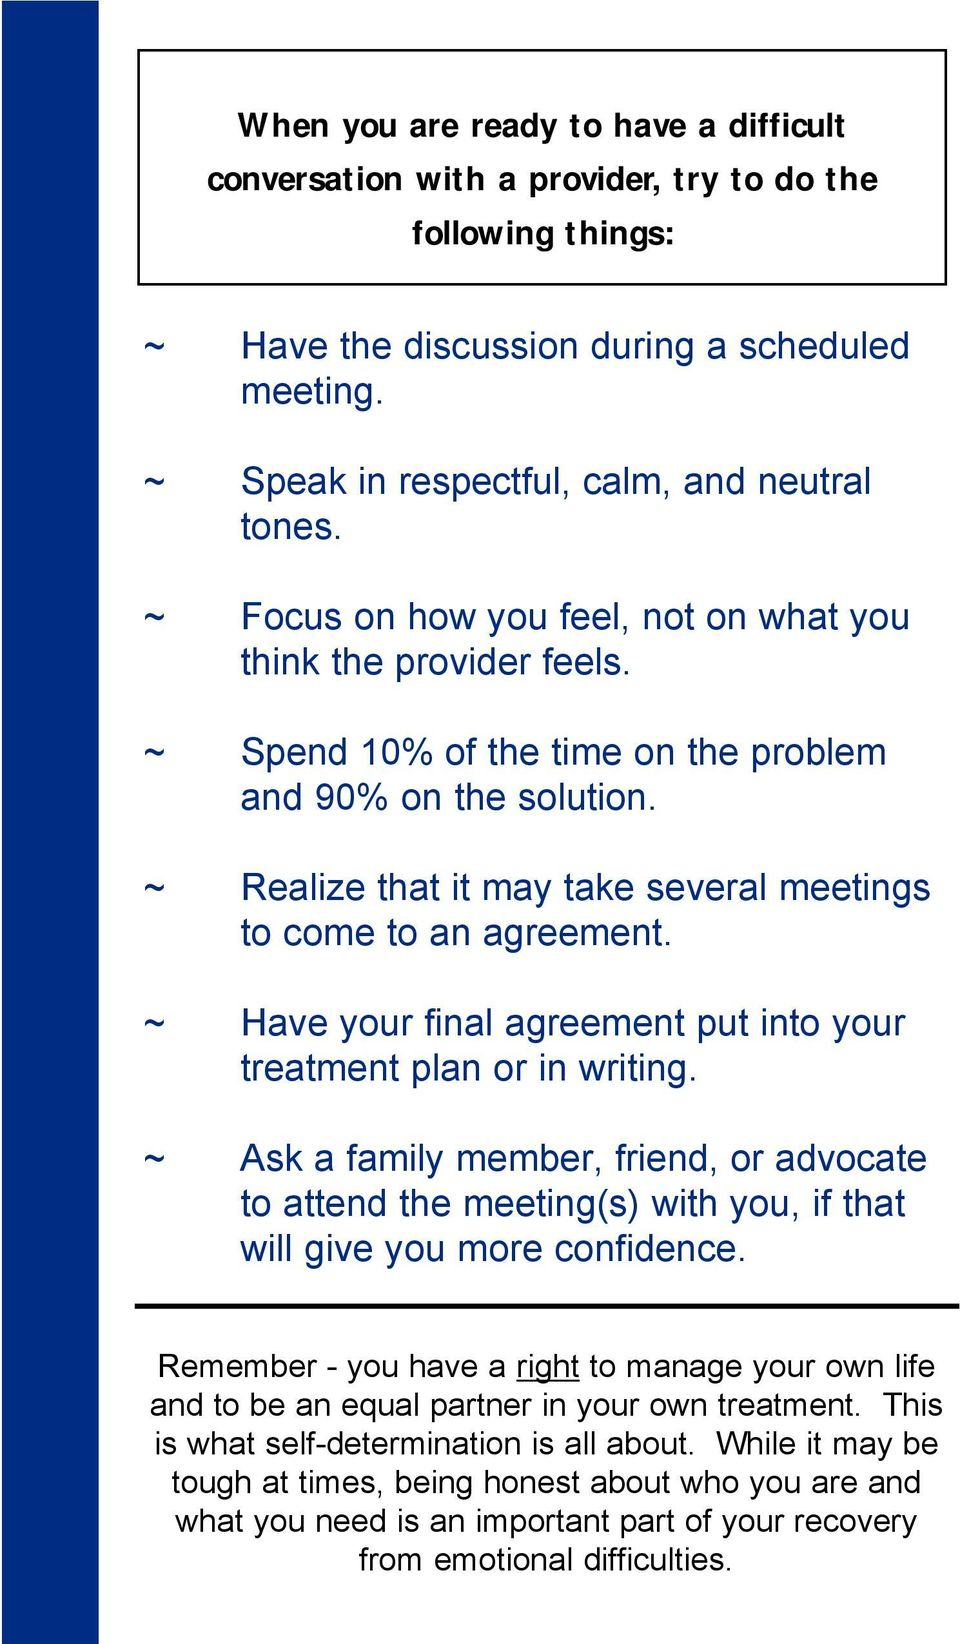 ~ Have your final agreement put into your treatment plan or in writing. ~ Ask a family member, friend, or advocate to attend the meeting(s) with you, if that will give you more confidence.